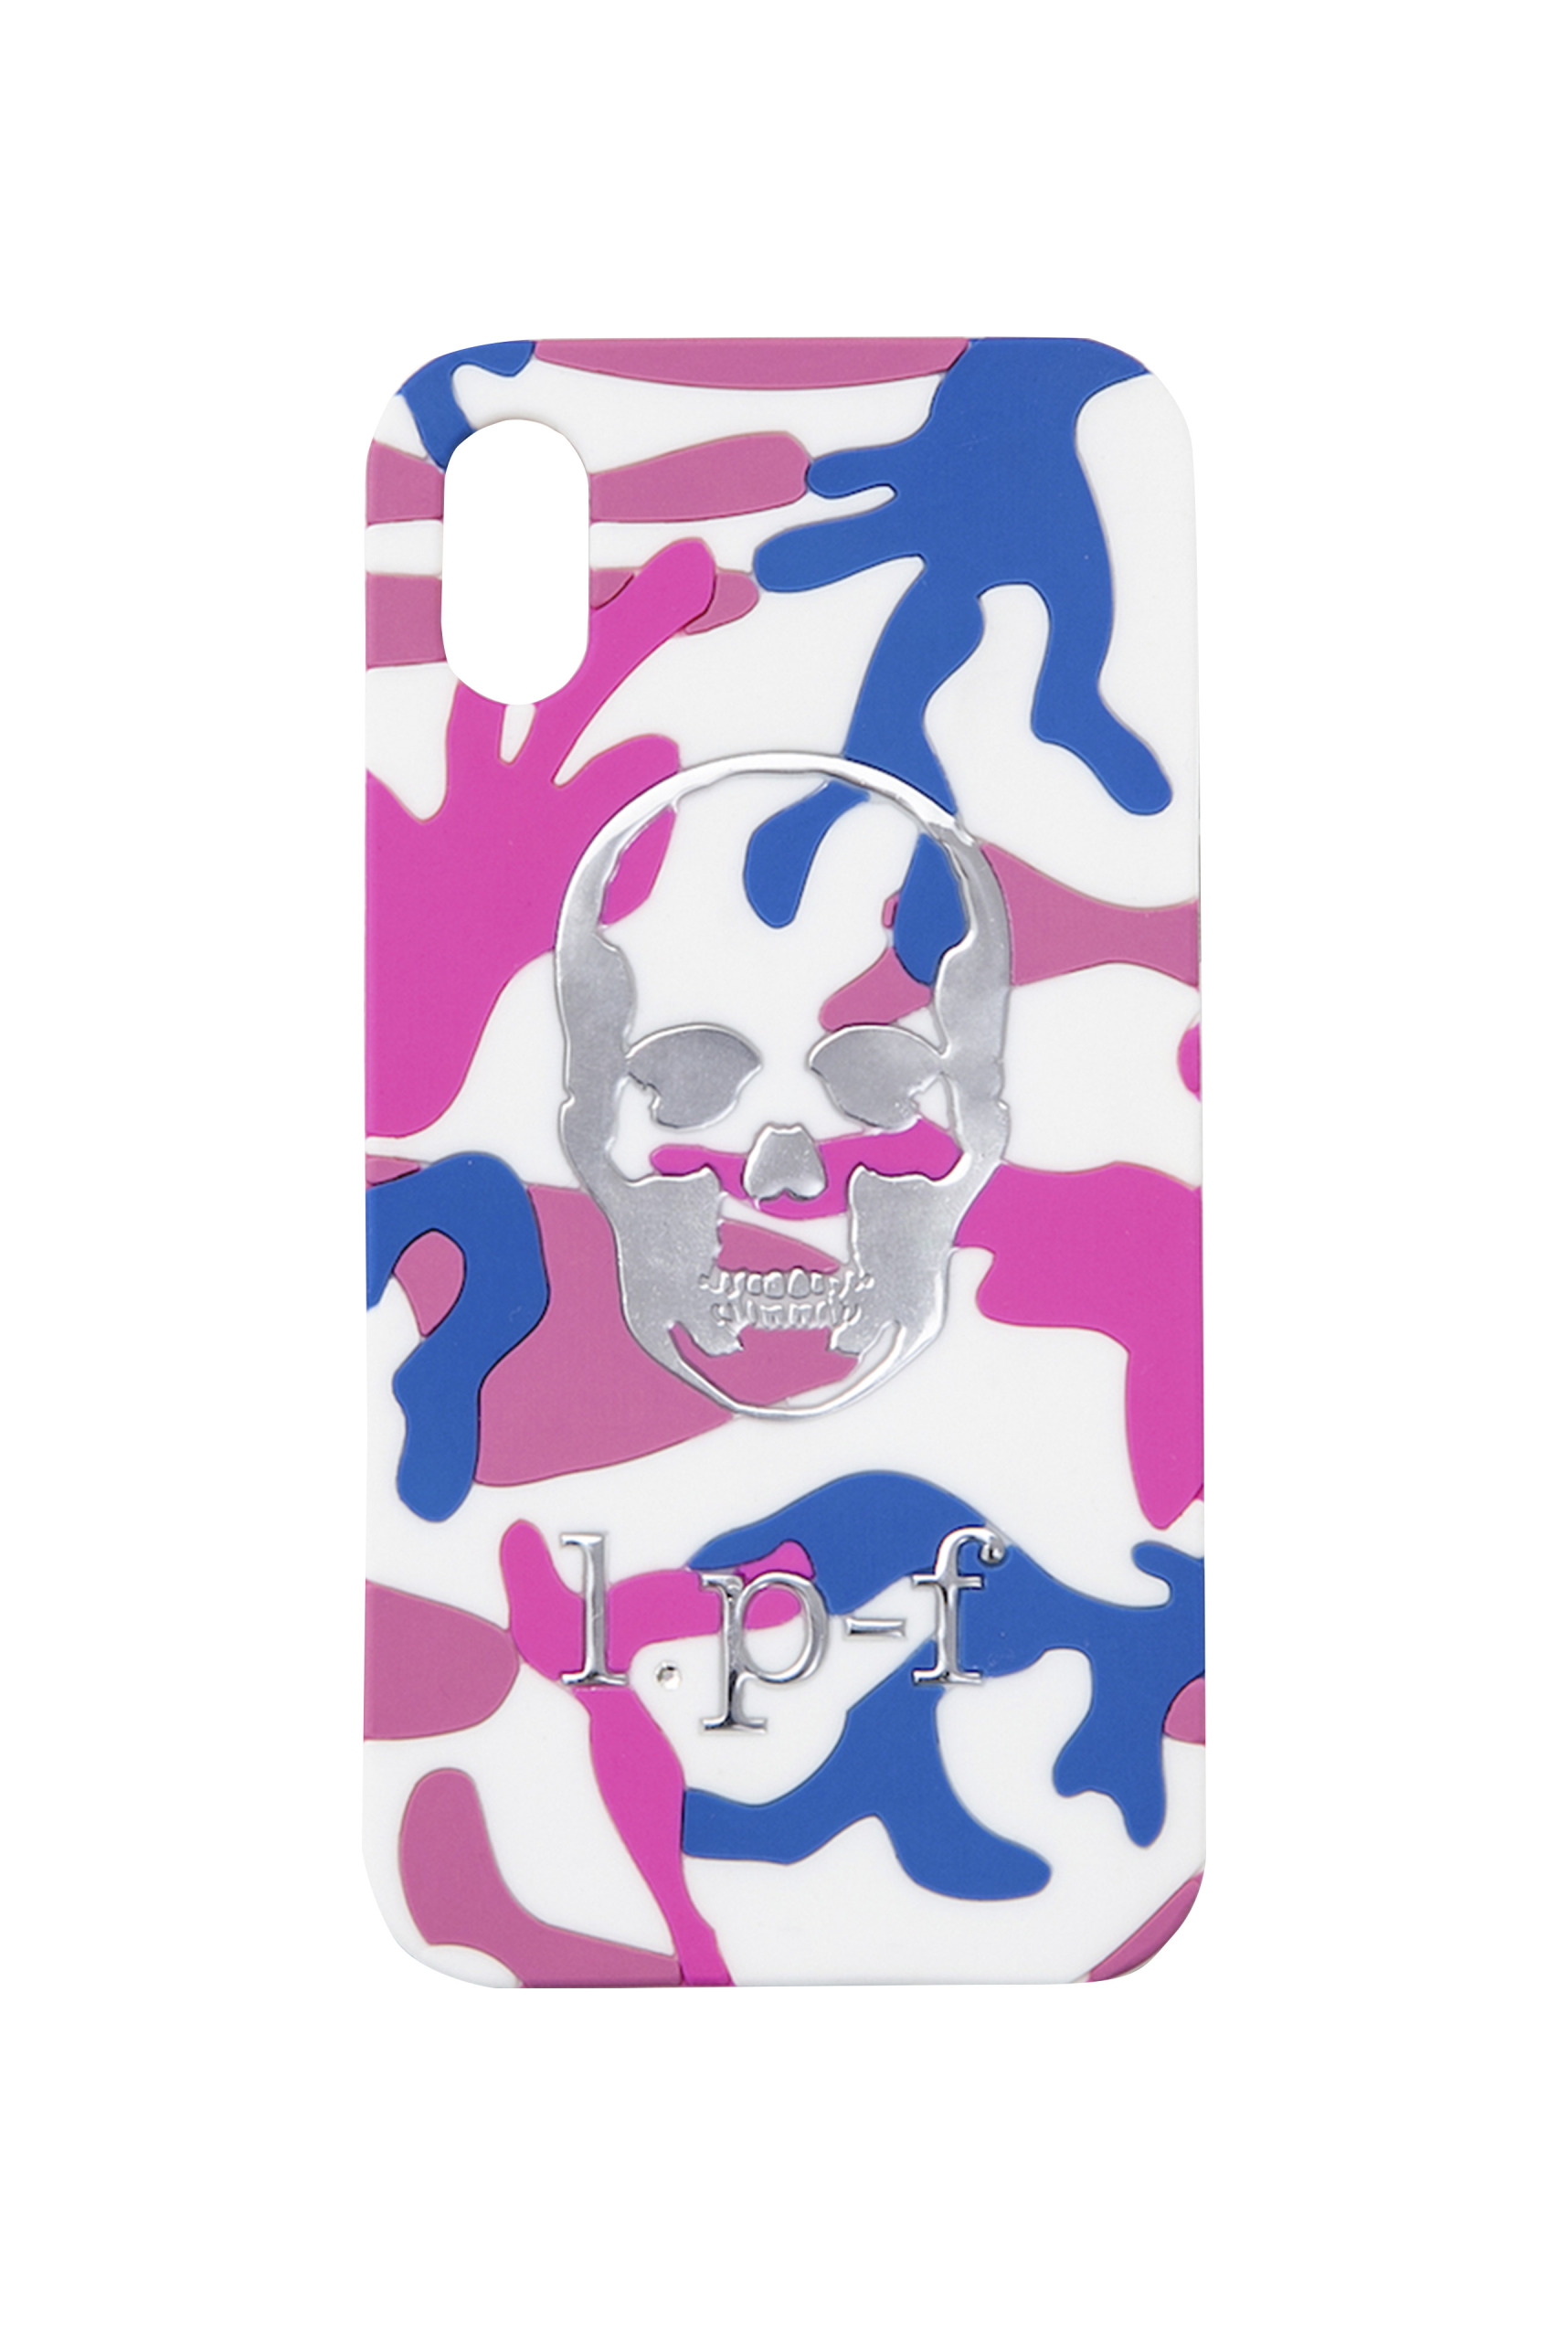 iPhone Case ( for iPhone X)(PINK-FREE)